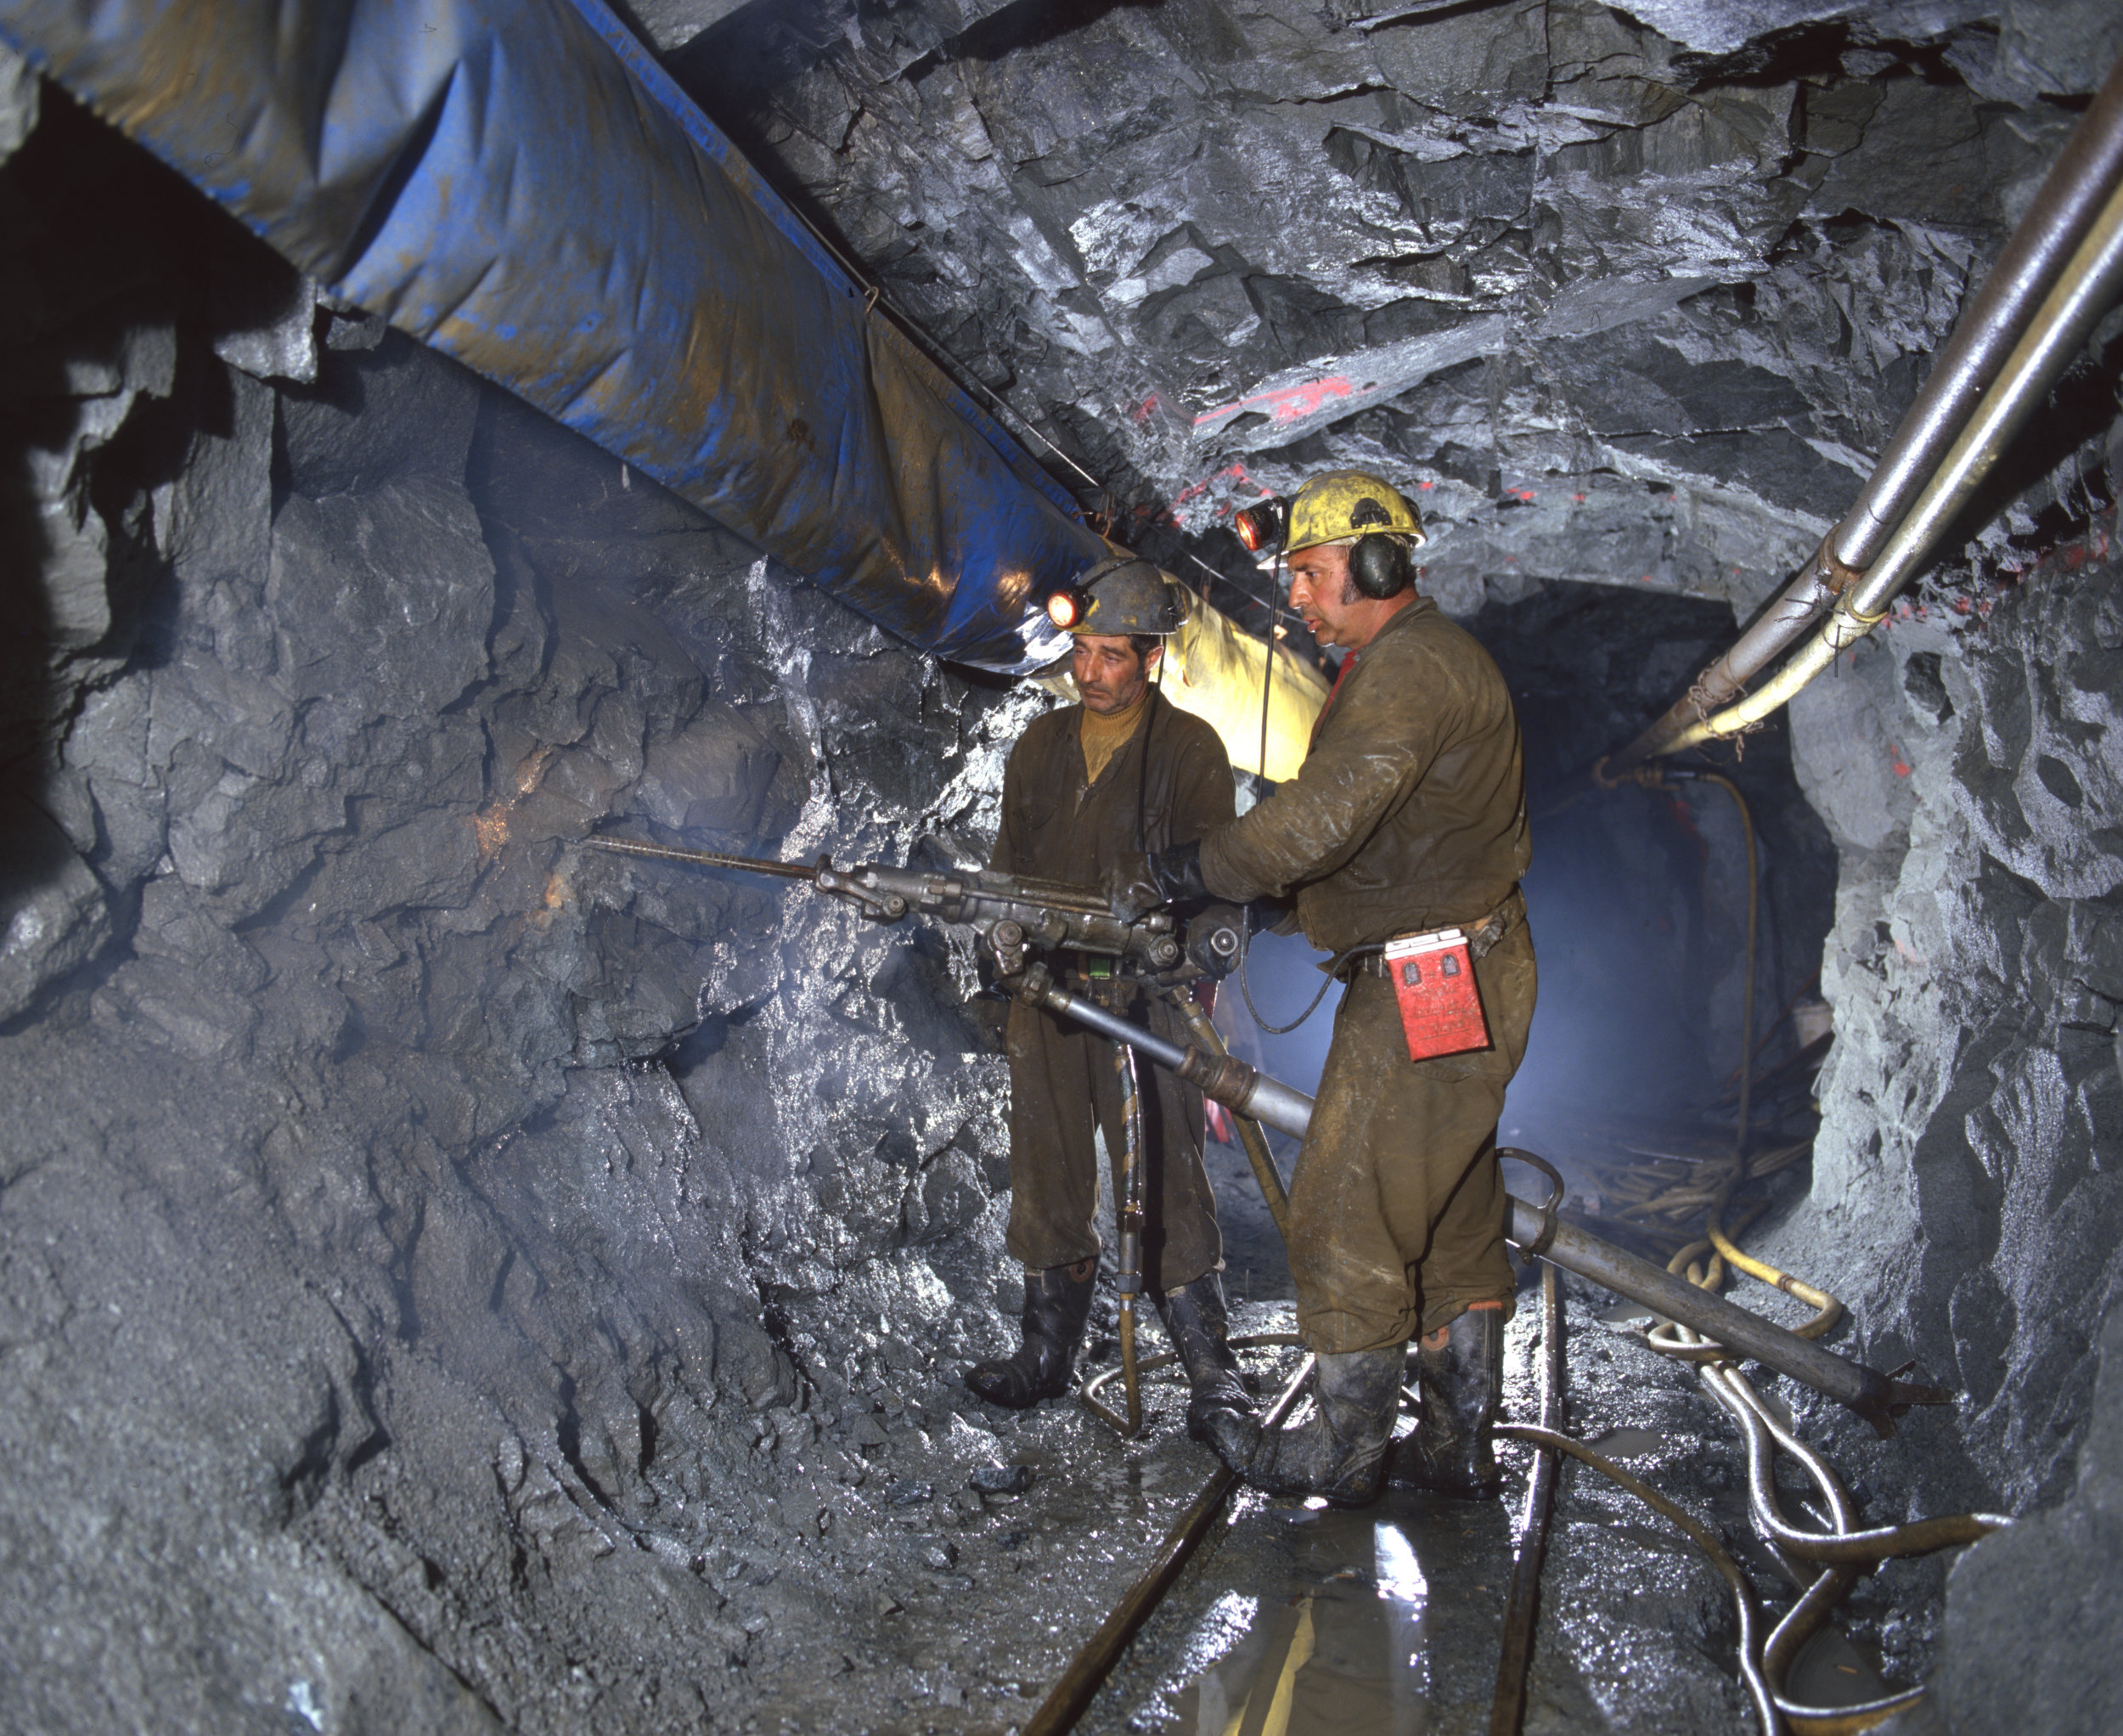 Driller and assistant, with jackleg drill commence crosscut at a small gold mine.